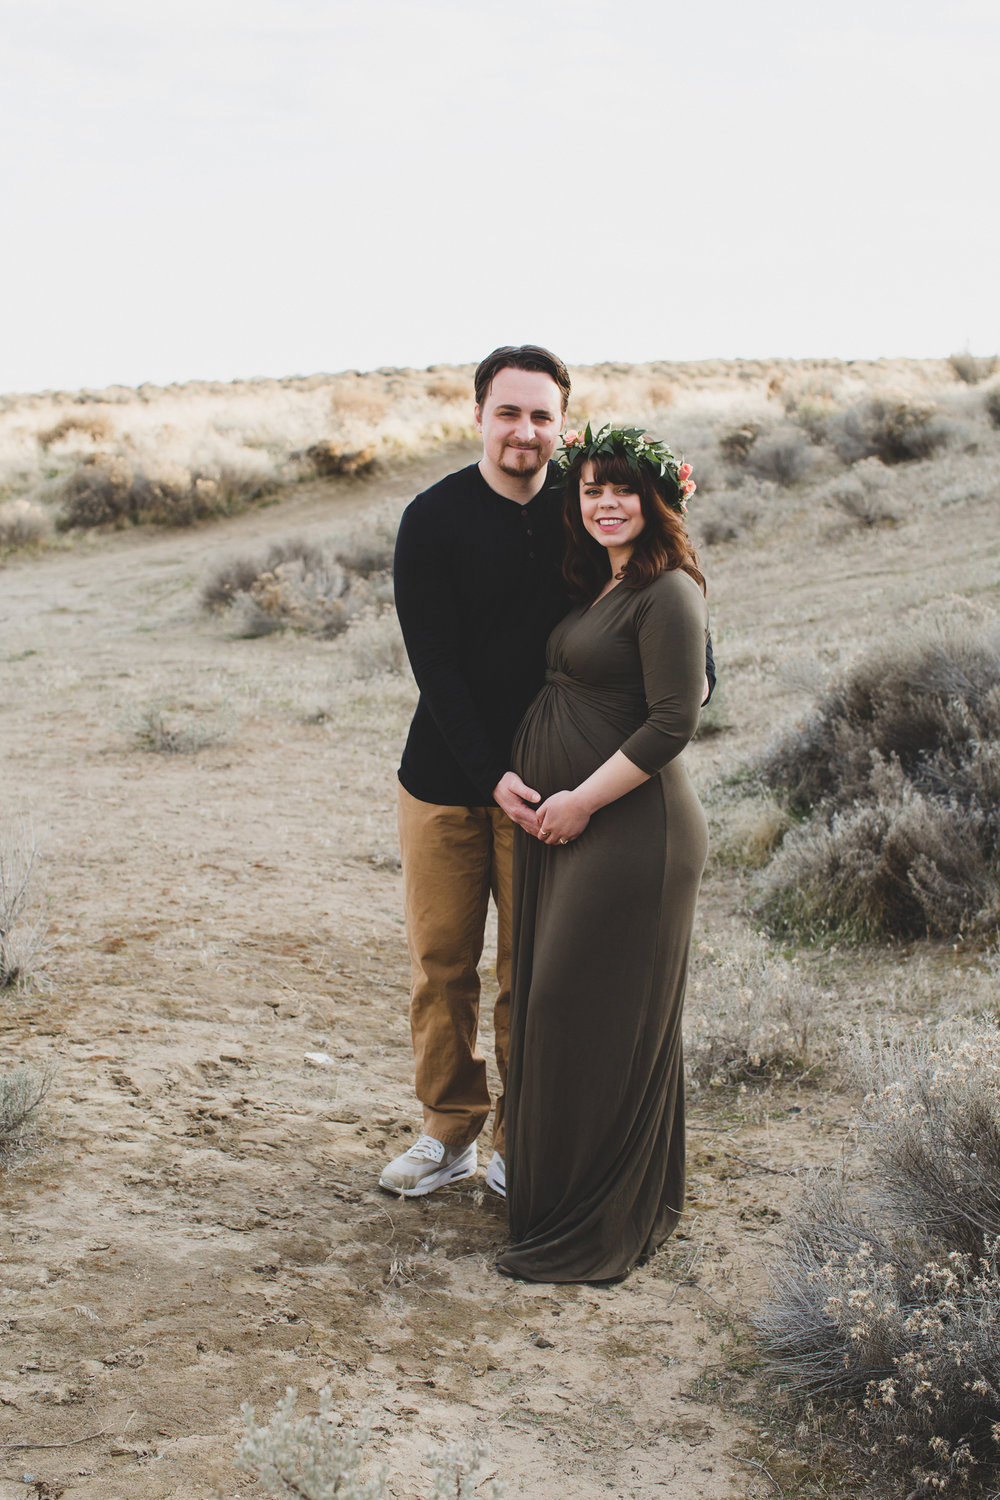 Tri Cities Maternity photographer_tri cities maternity_richland photographer_kennewick photographer_maternity session_red mountain_mama to be_parents to be_tri cities family session_red mountain trails_sage brush_horse_desert session_sunset session_6